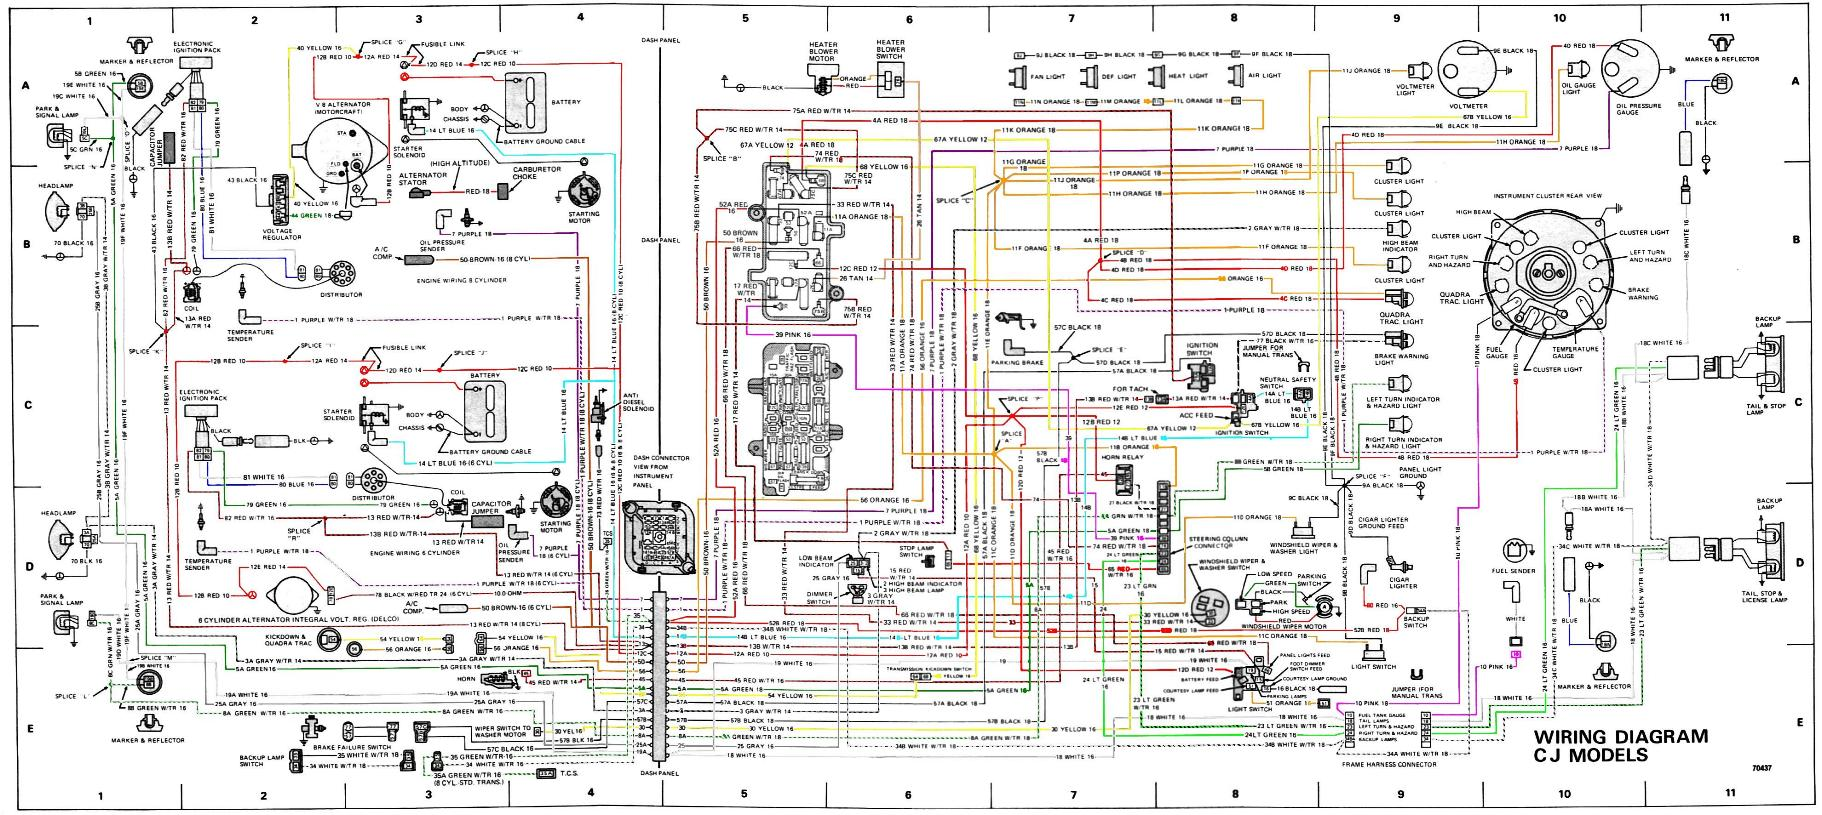 984858d1389333313t electric choke voltage not shutting off cj 7 wiring diagrams colored diagrams 25761110 jeep wiring diagram amc jeep wiring amc jeep wiring schematic at suagrazia.org